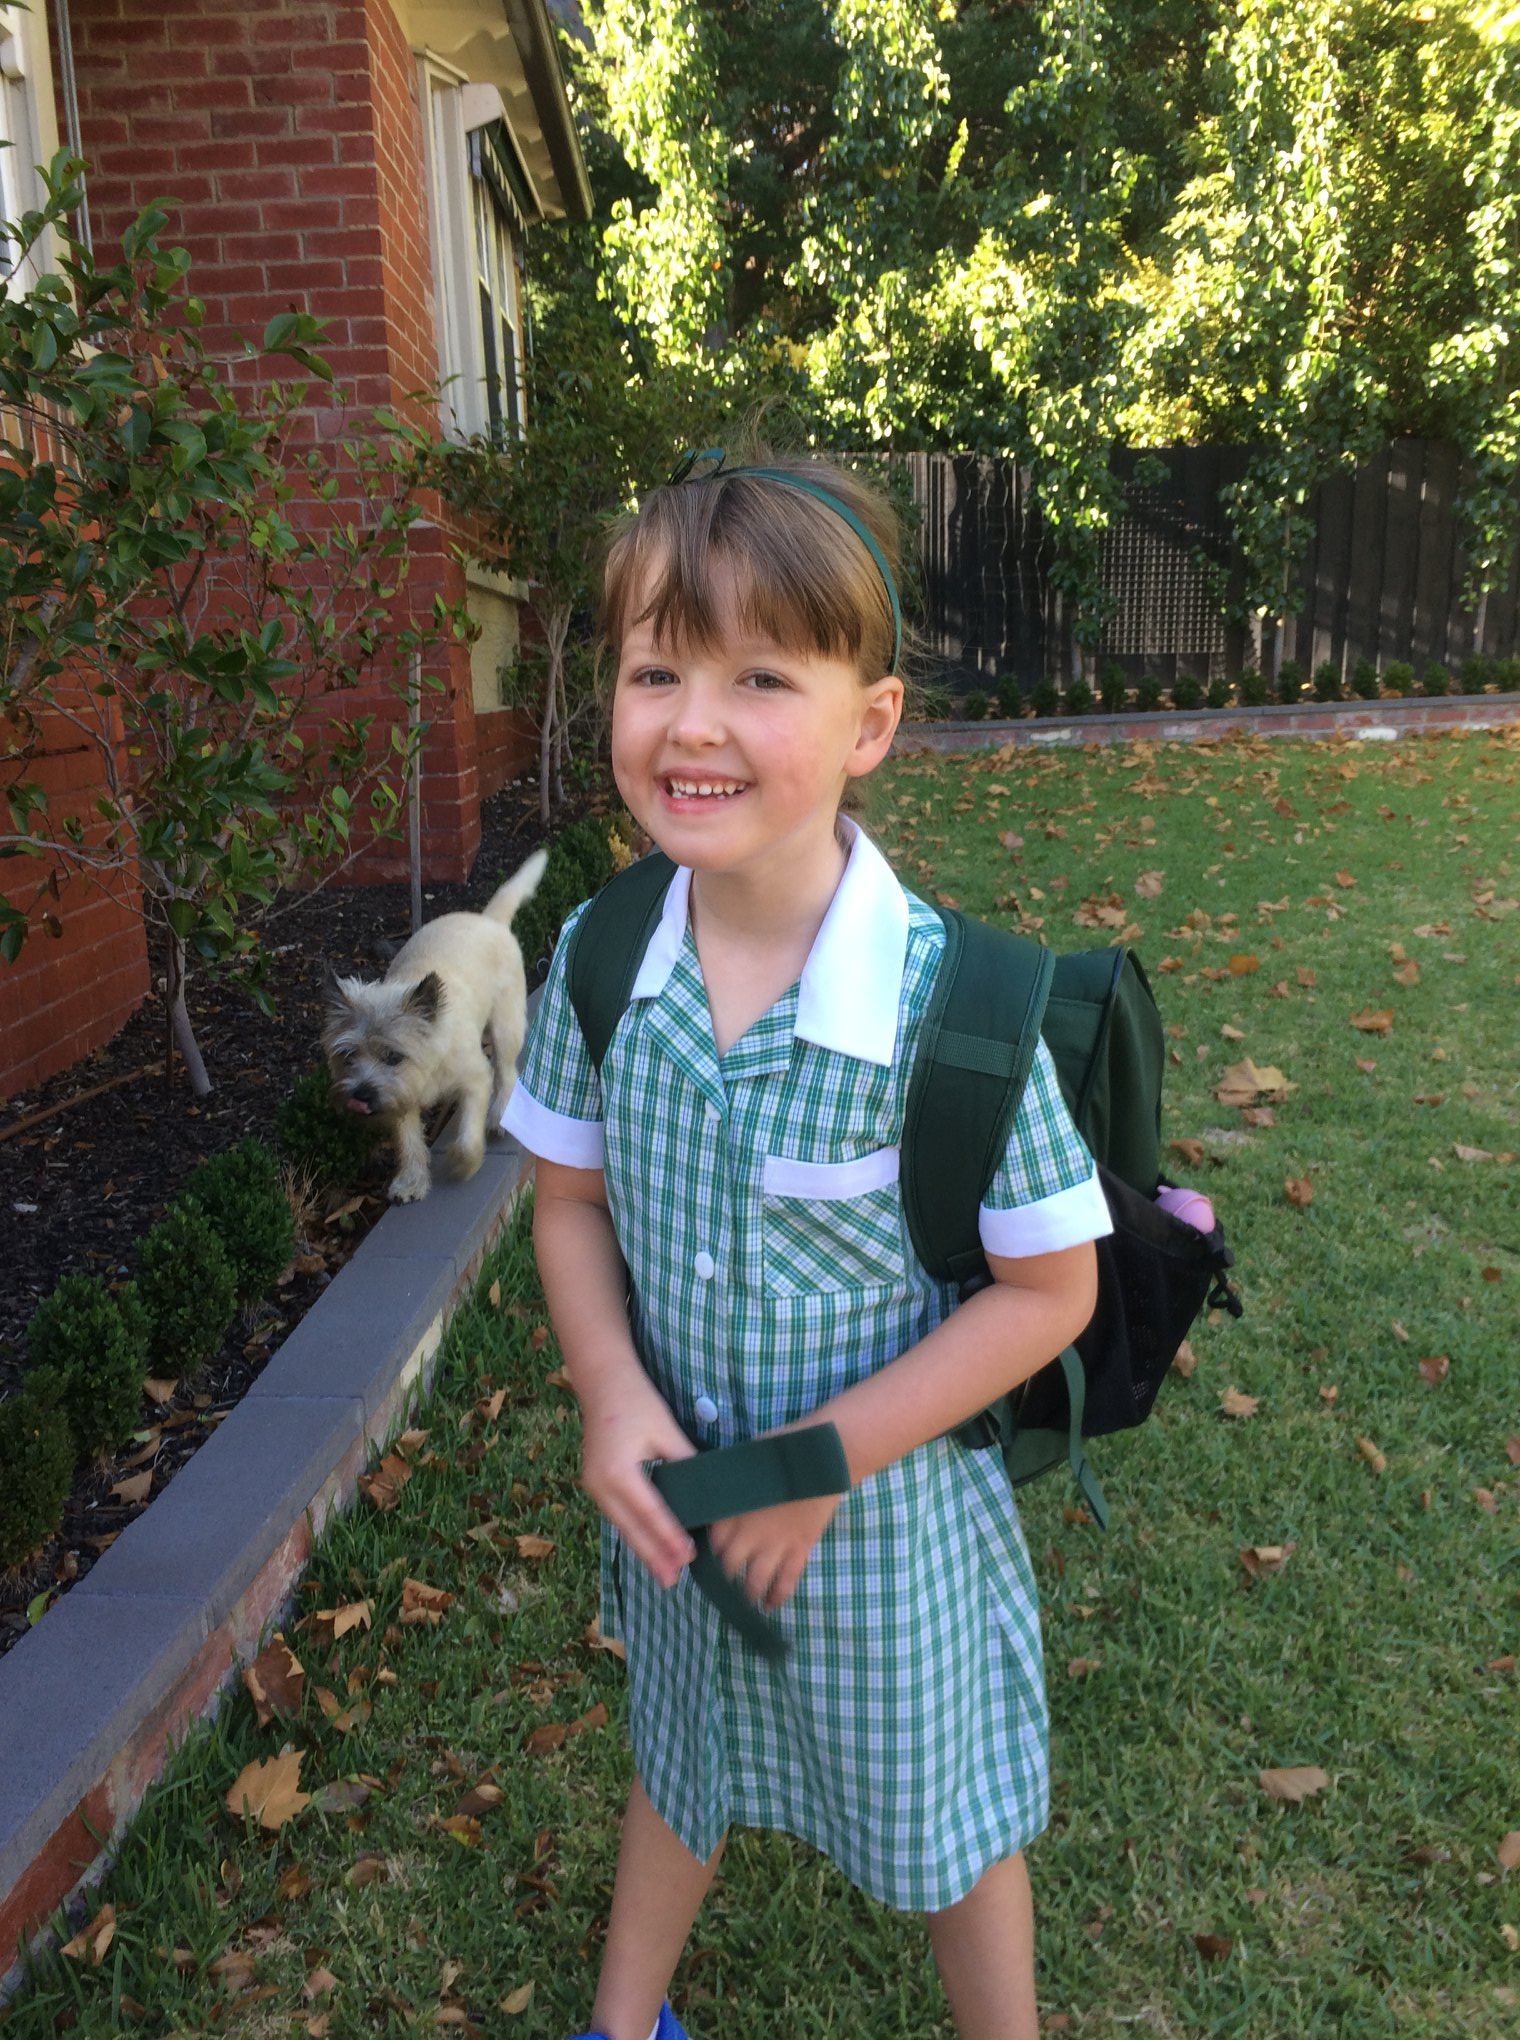 Clemmie's first day of school